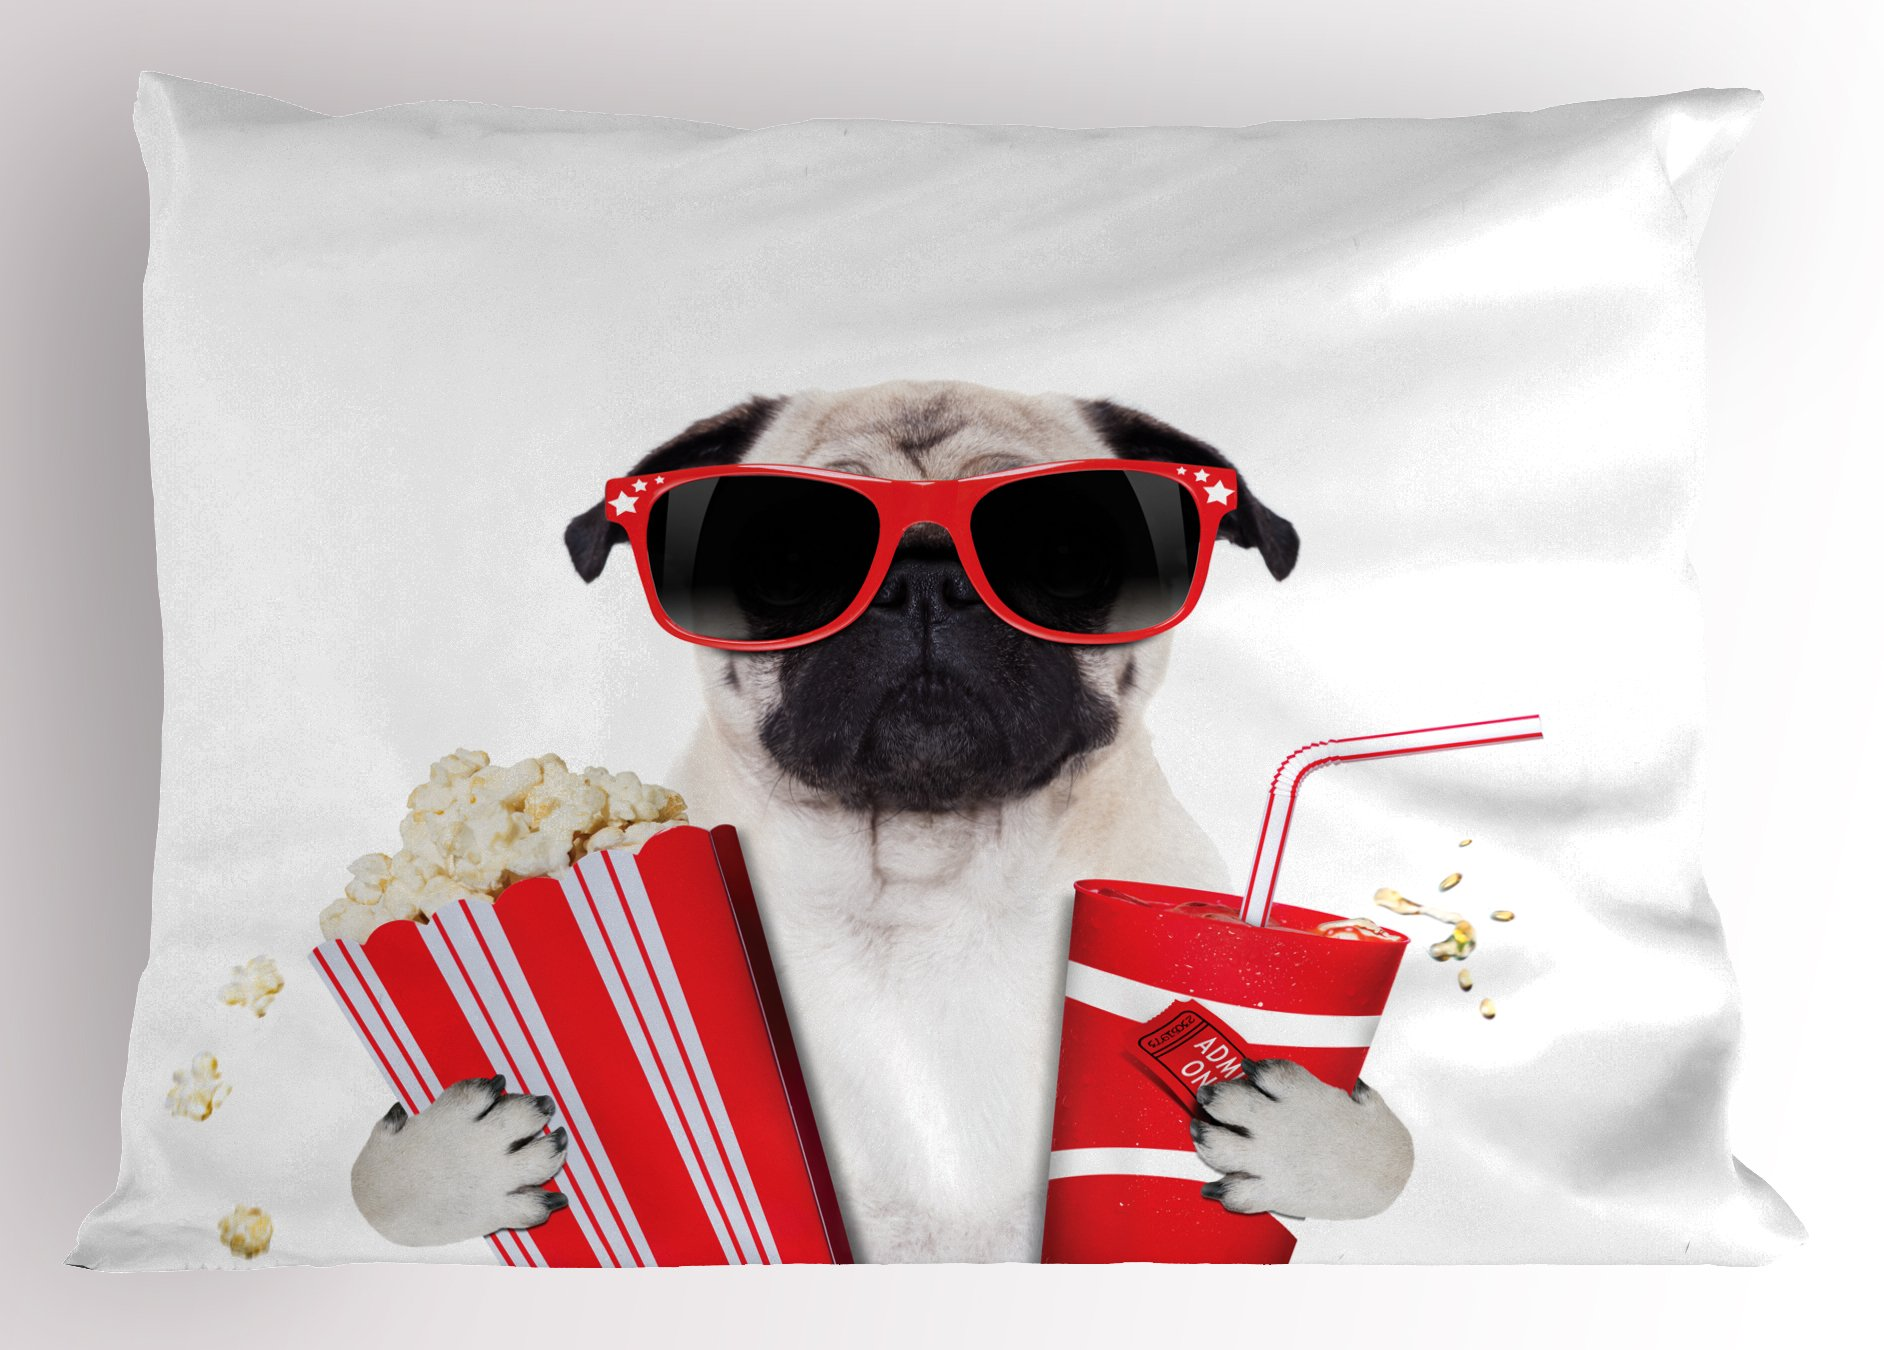 Ambesonne Pug Pillow Sham, Going to The Movies Pug Dog Popcorn Soft Drink Movie Star Glasses Animal Fun Image, Decorative Standard King Size Printed Pillowcase, 36 X 20 inches, Cream Red Black